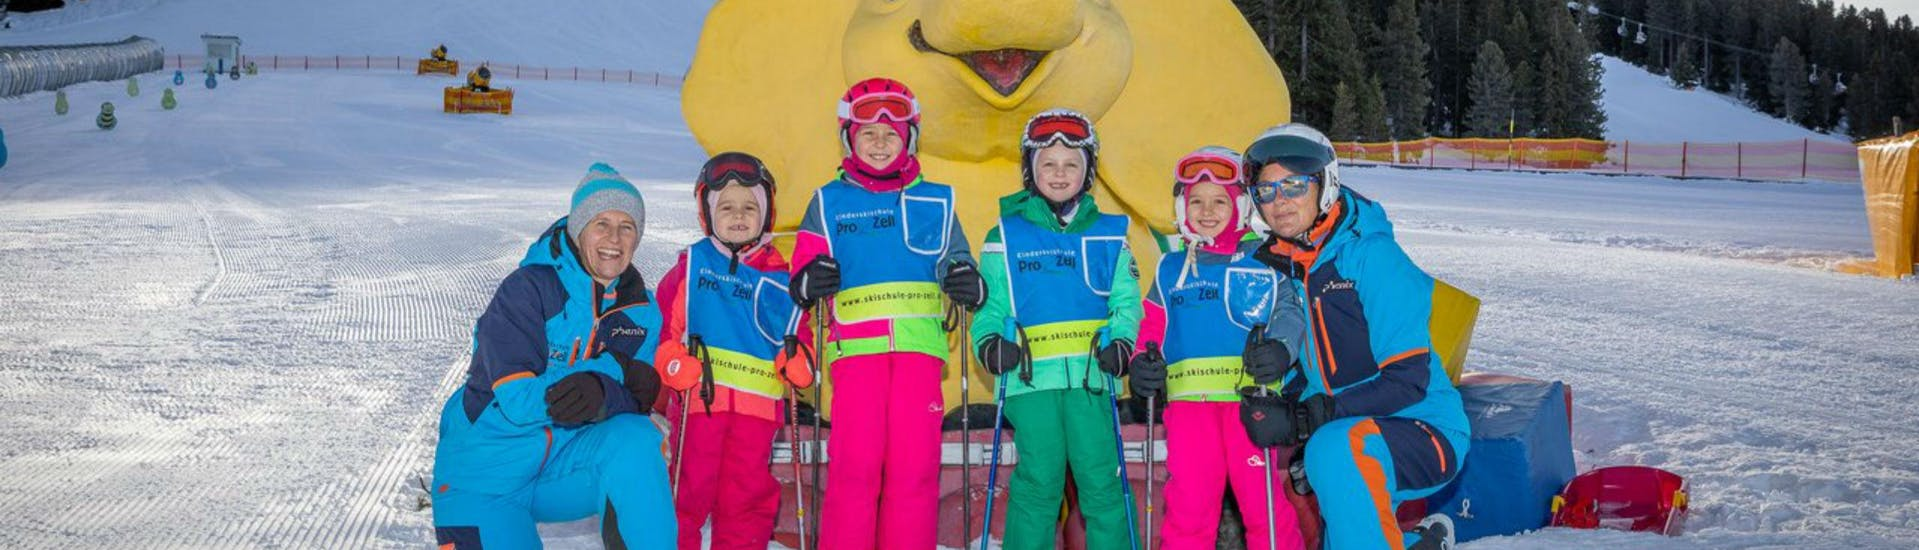 A group of children and their two ski instructors from the ski school Skischule Pro Zell in Zell am Ziller are posing for a photo in the Kinderland area during their Kids Ski Lessons (from 6 years) - Beginners.